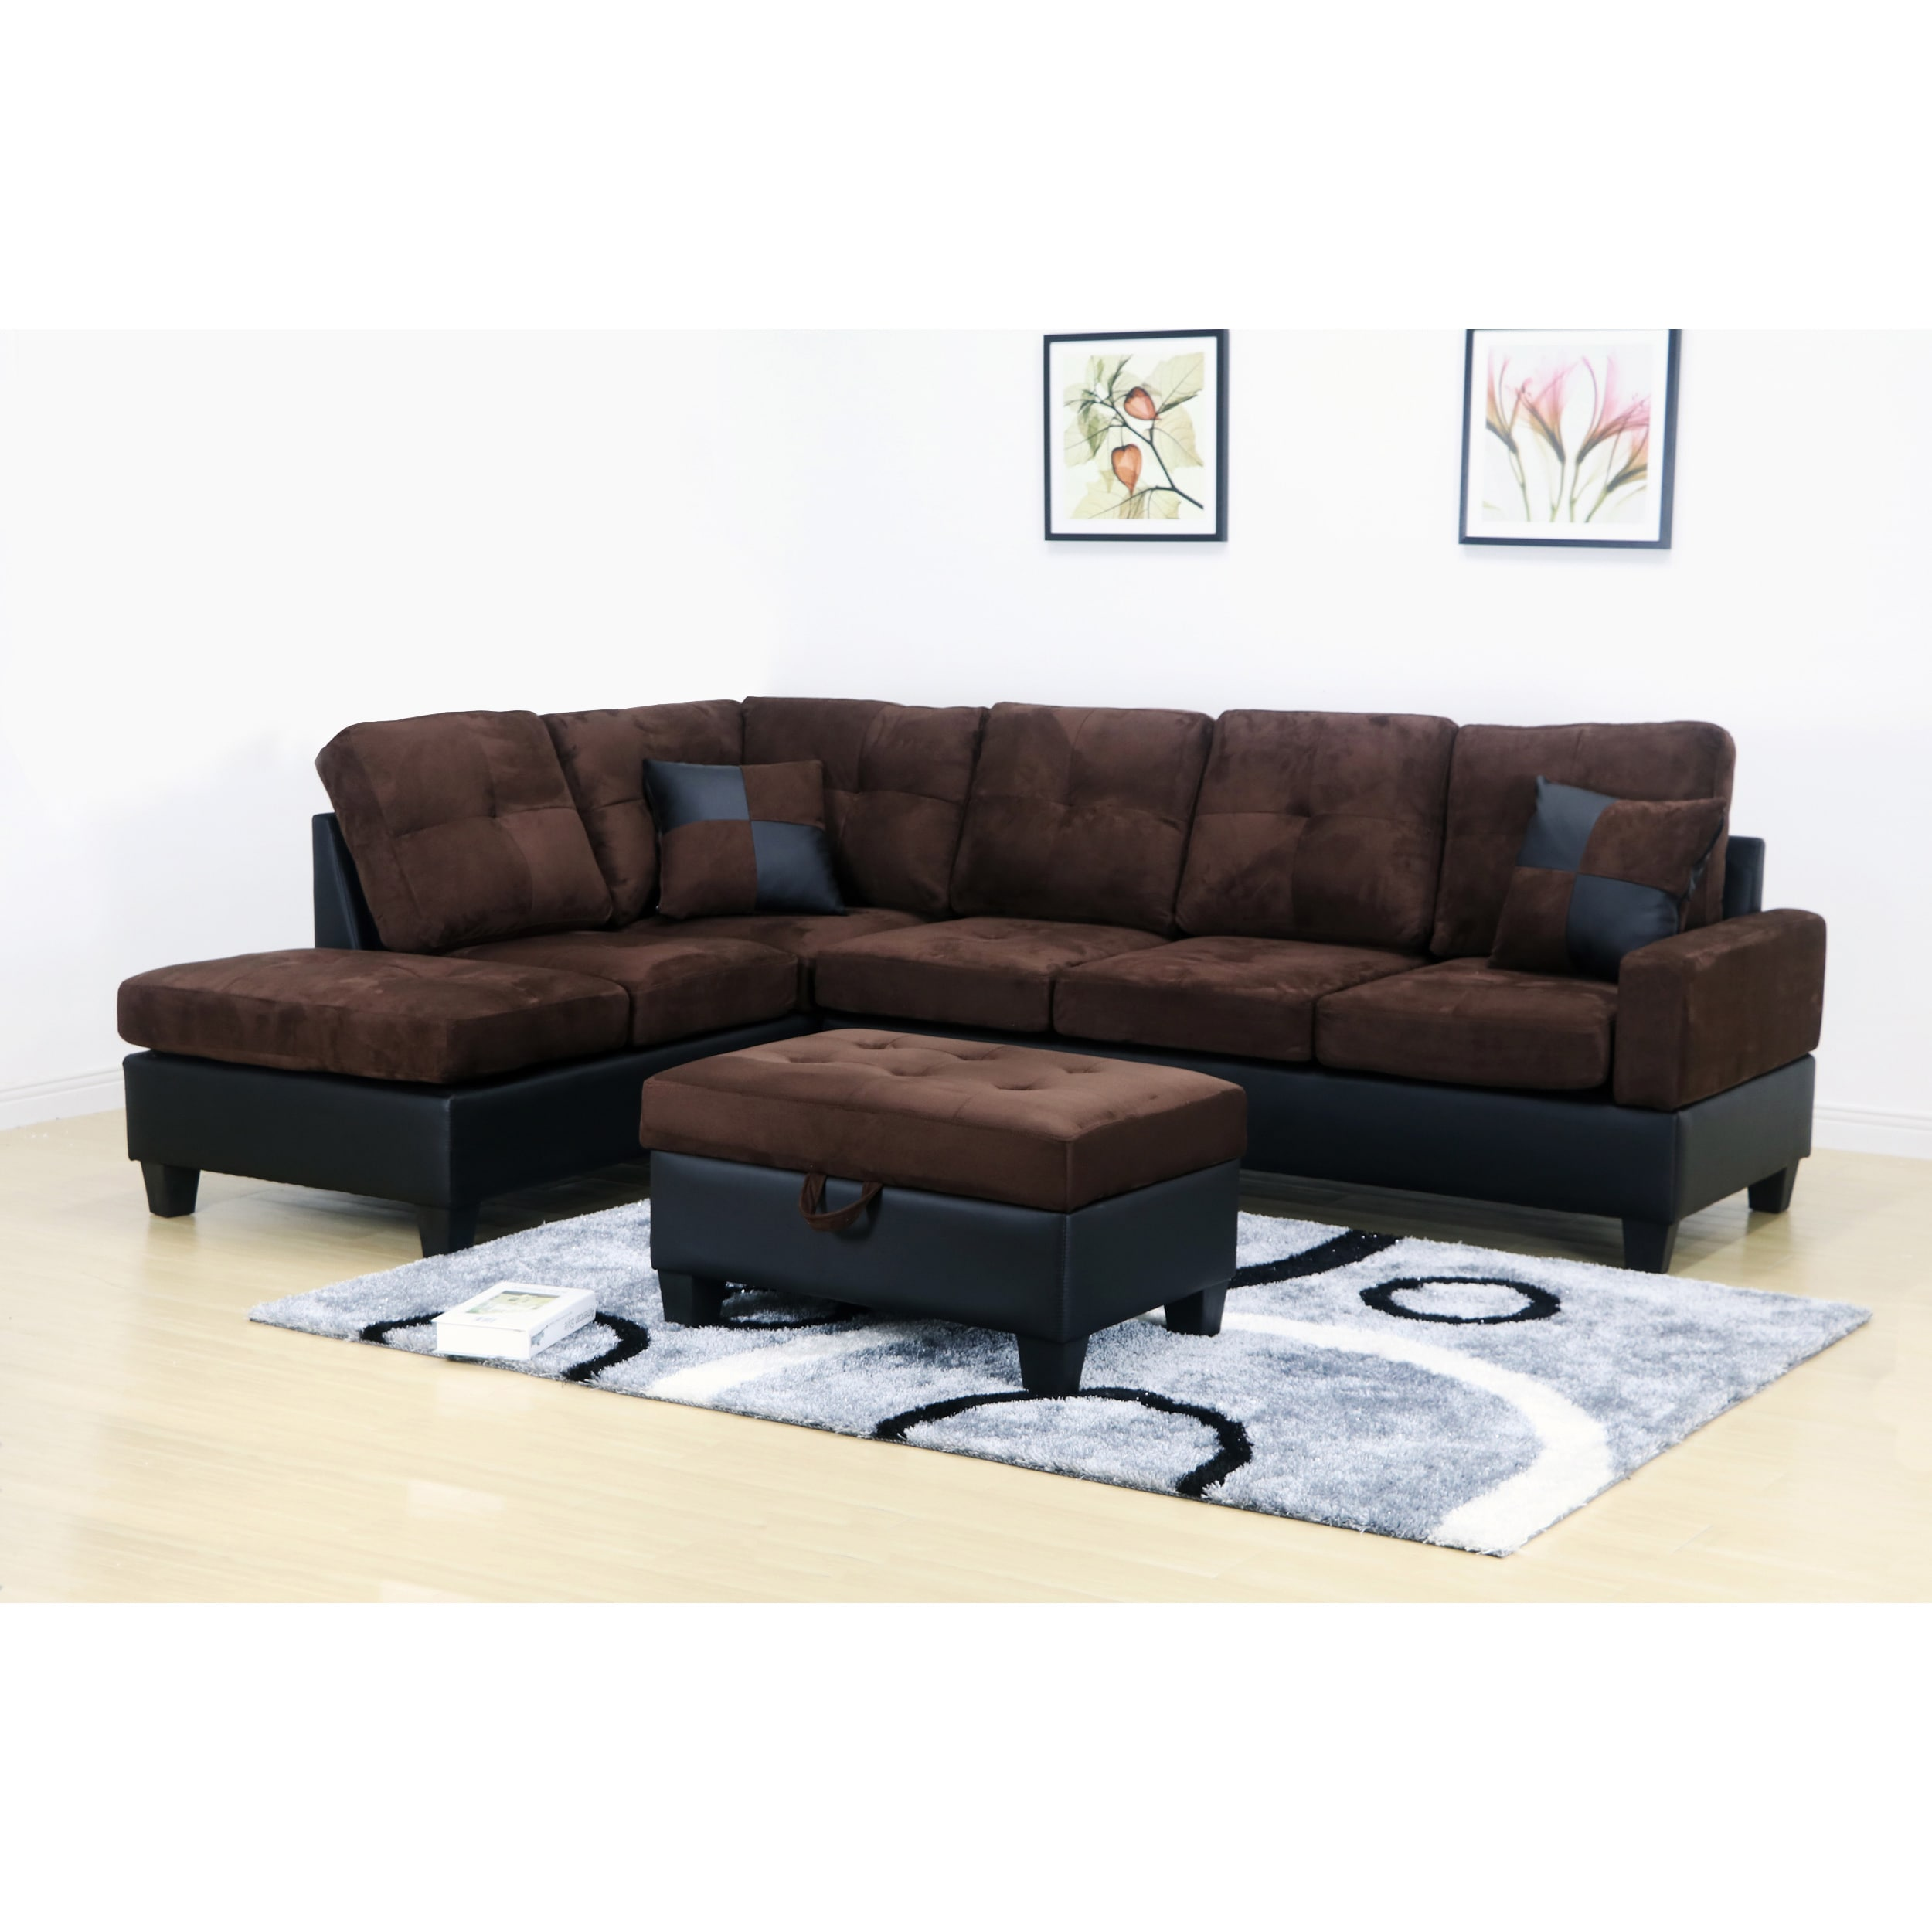 Miraculous Charlie Dark Brown Microfiber Sectional Sofa And Storage Ottoman Ncnpc Chair Design For Home Ncnpcorg